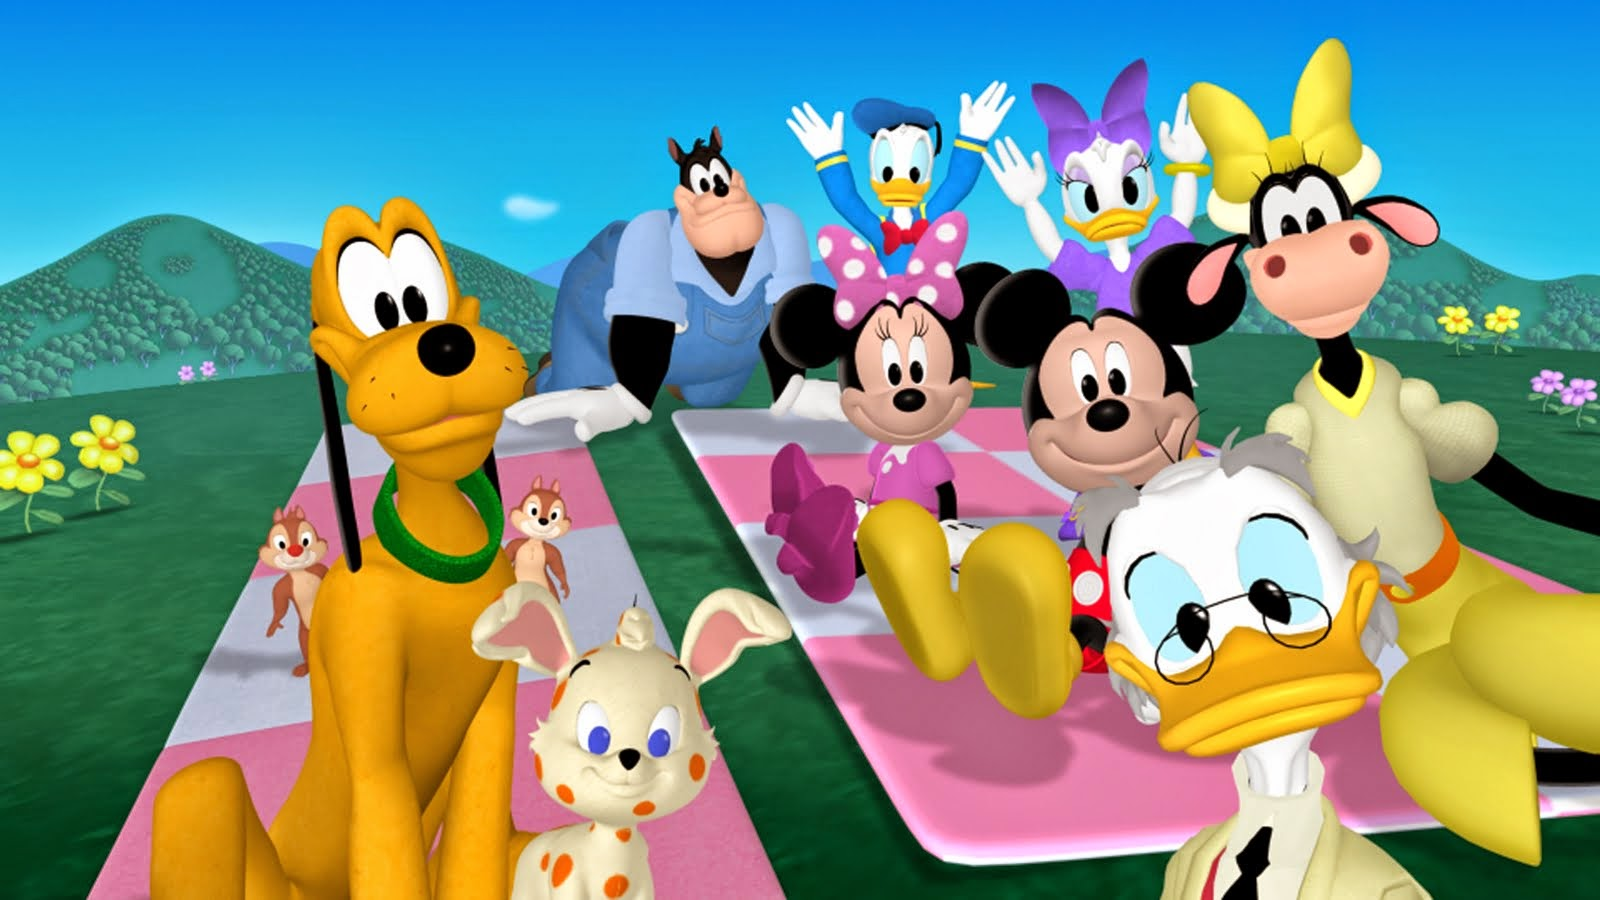 Kumpulan Gambar Cartoon The Mickey Mouse Club | Gambar ...